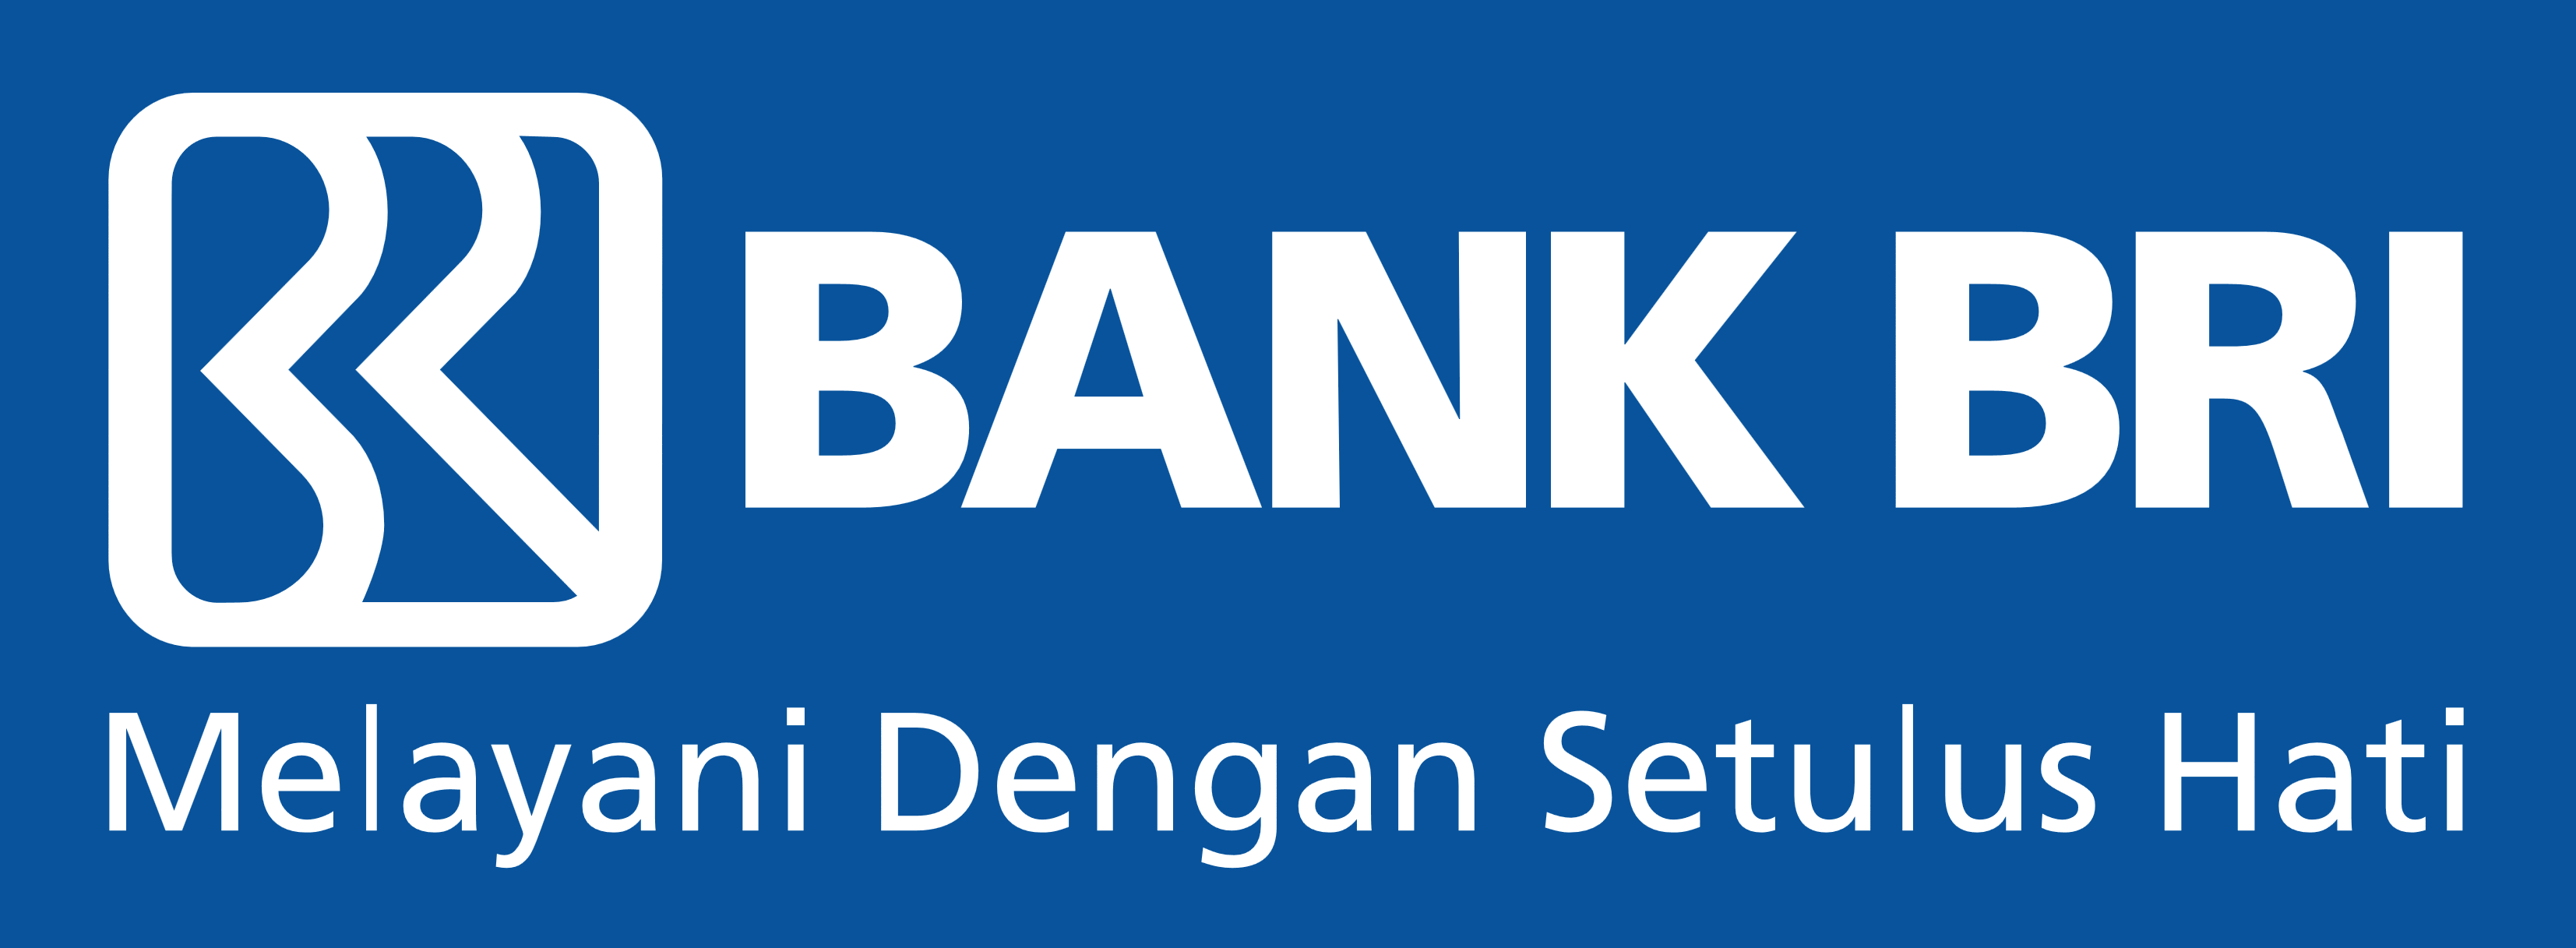 bank bri logo blue background